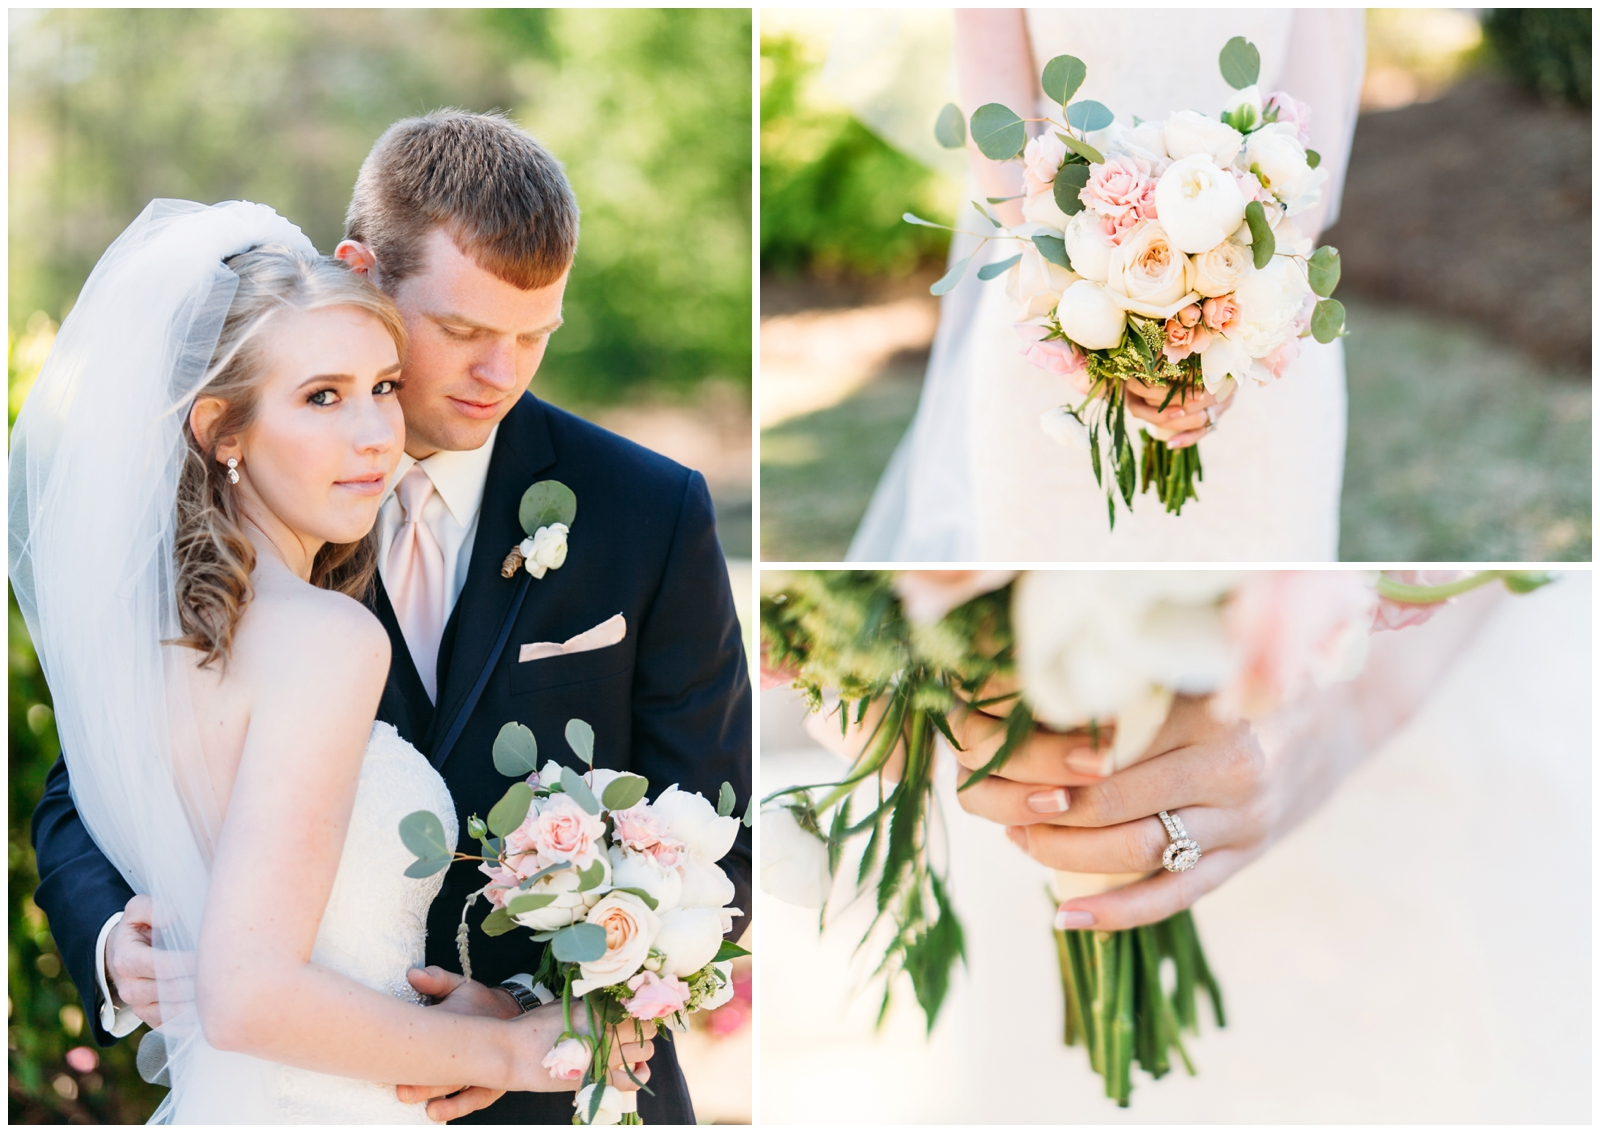 Morgan & Kyle_RoswellWedding_ArdentStory_0012